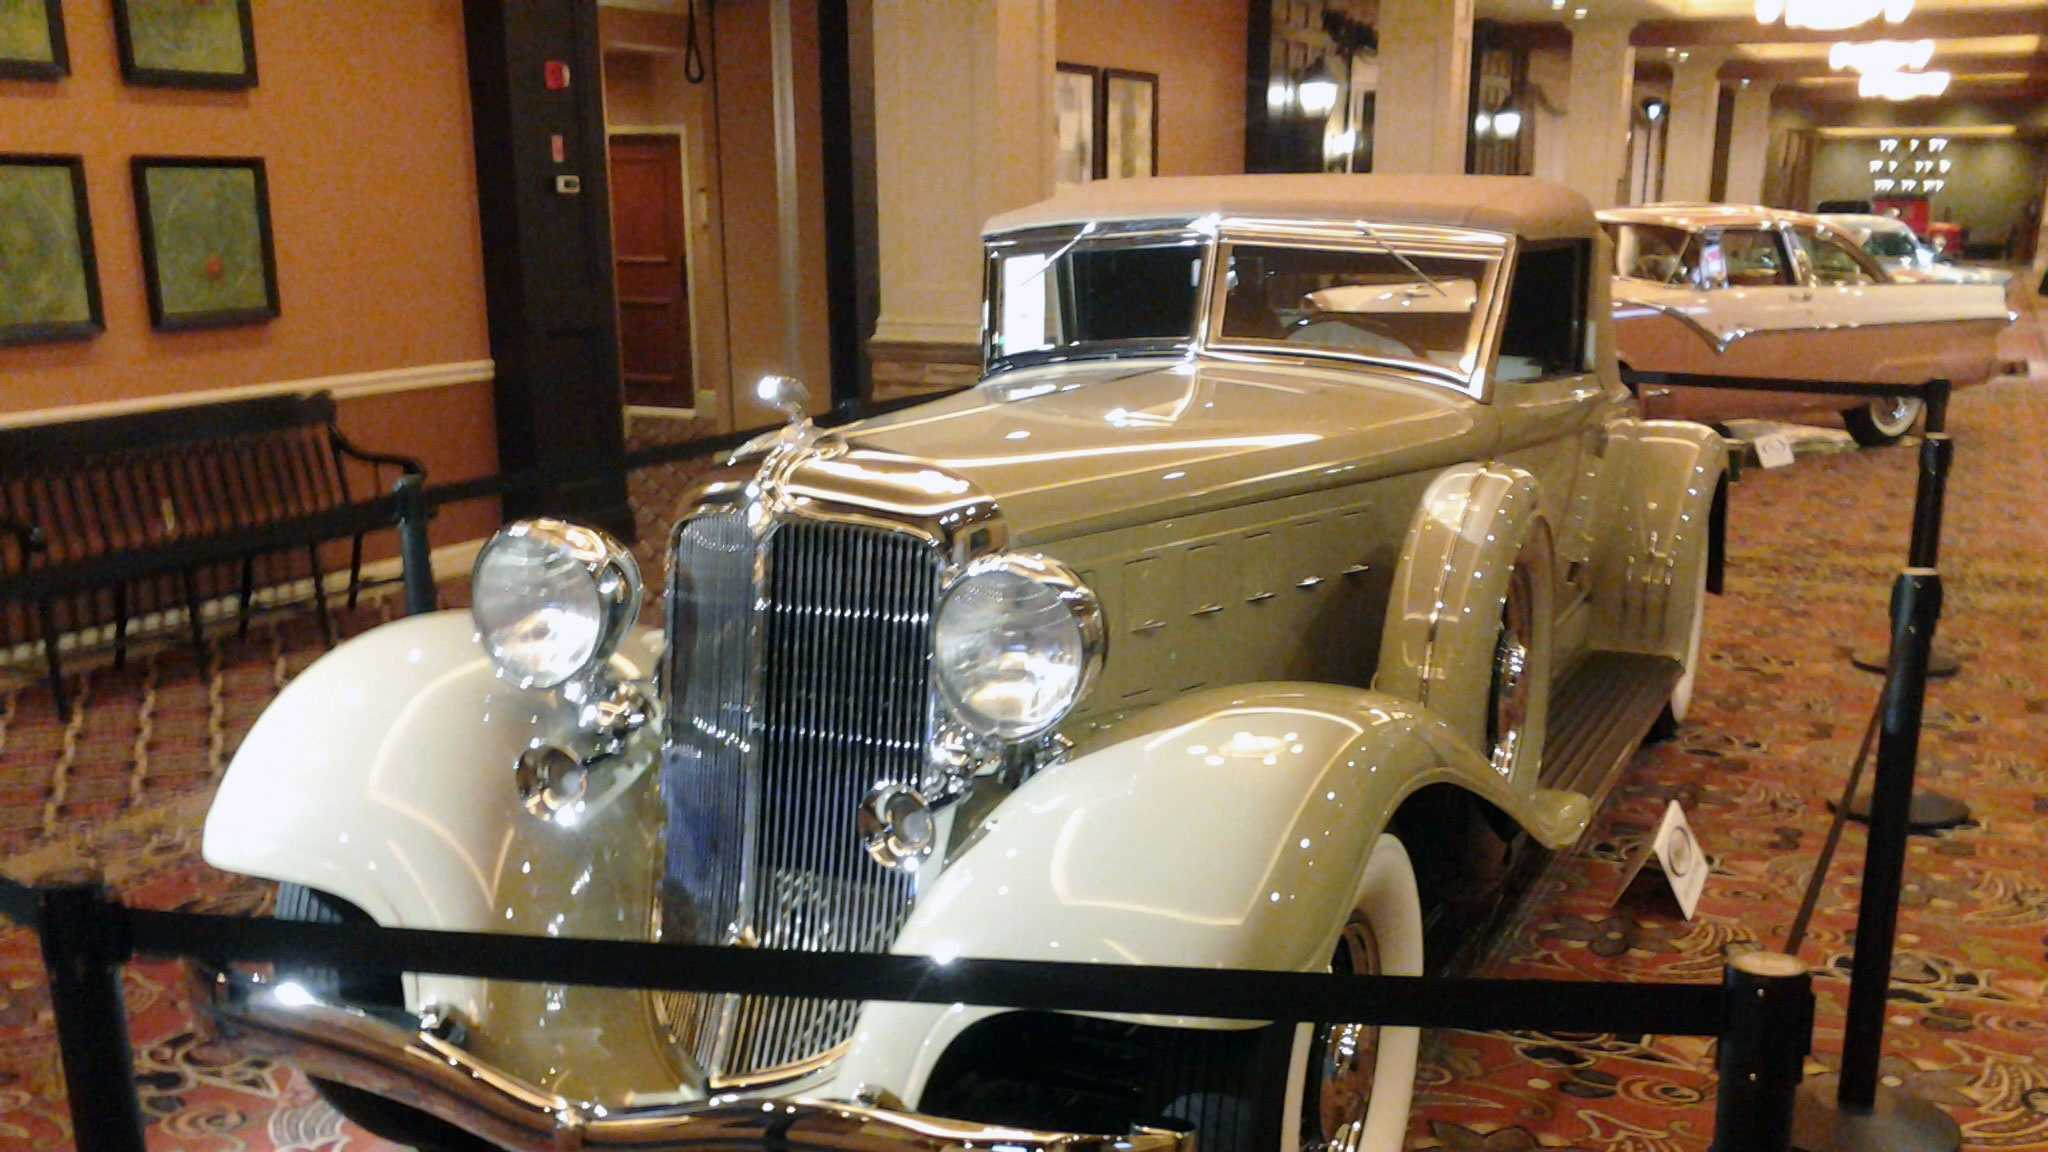 RM Auctions is holding its annual collector's car show at the Hershey Lodge and Convention Center.